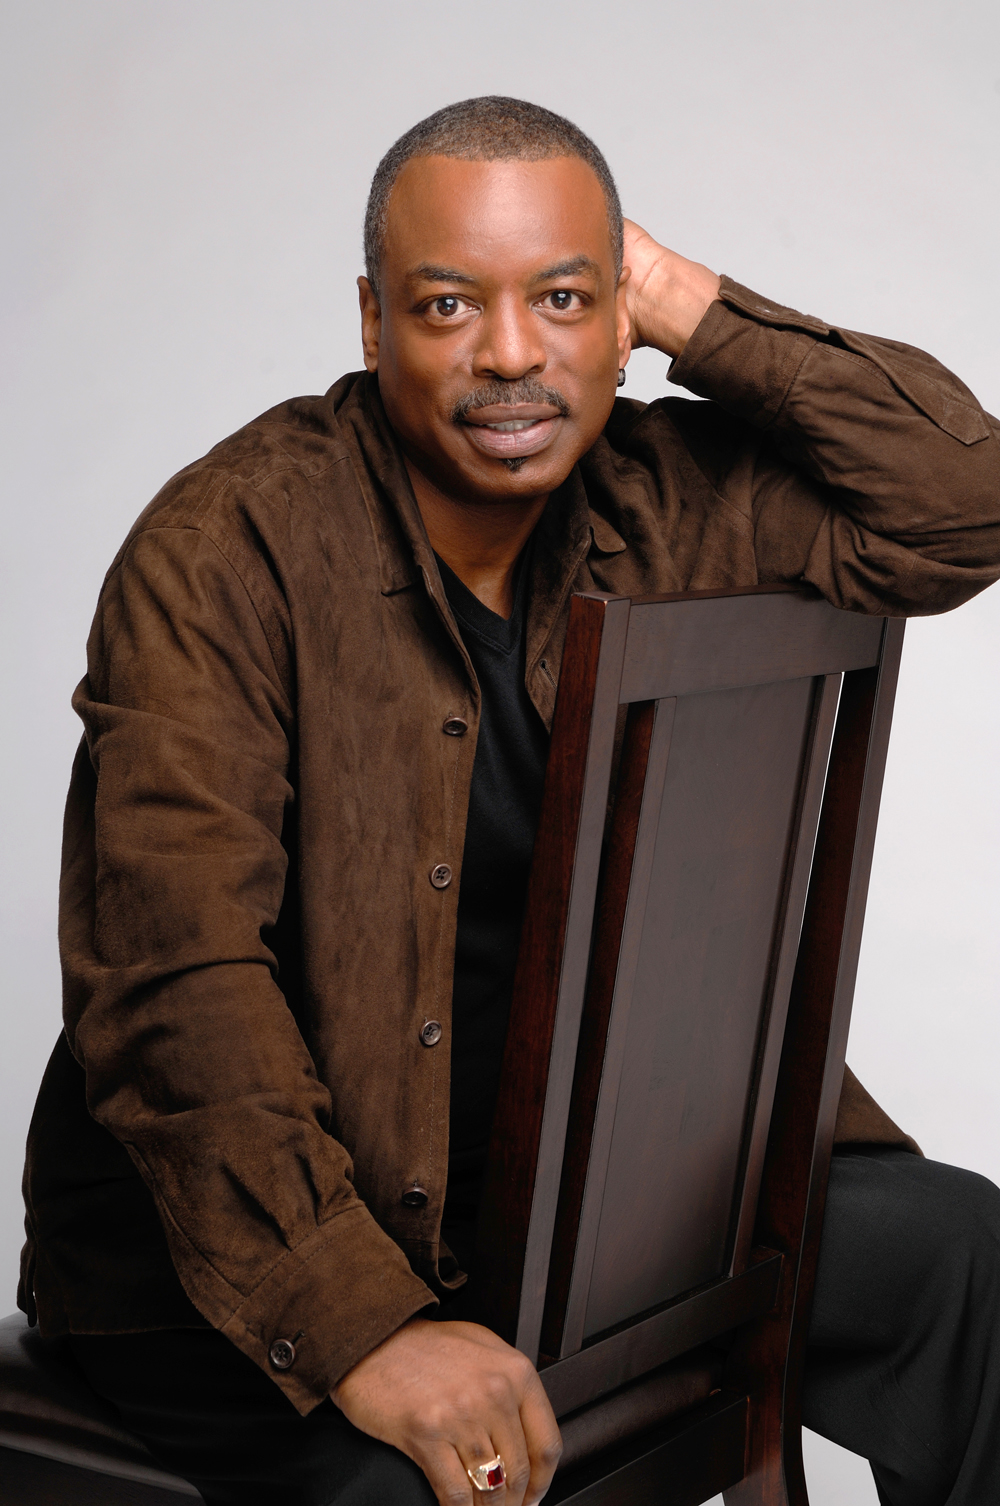 LeVar Burton of Reading Rainbow: On Dads' Reading to Their Kids